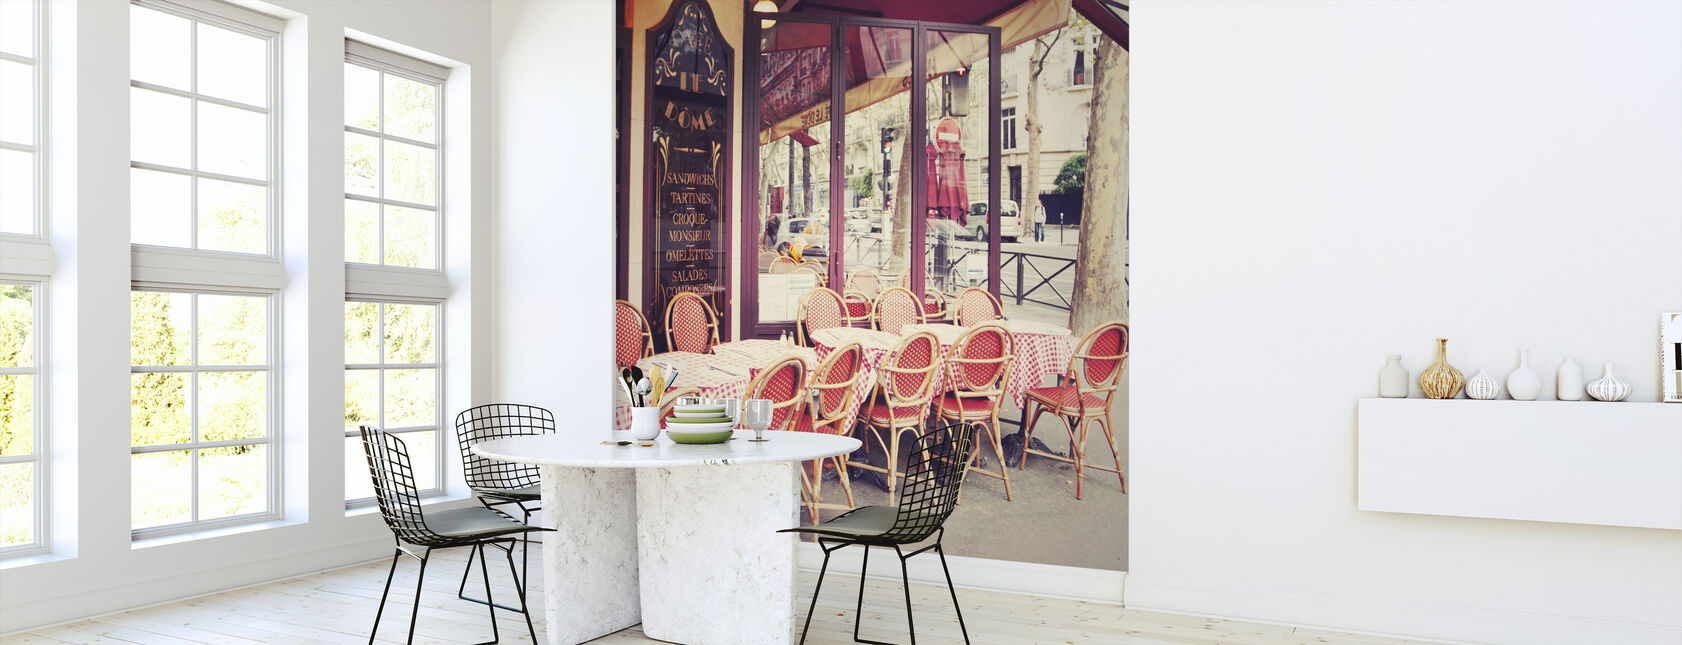 Cafe le Dome - Wallpaper - Kitchen